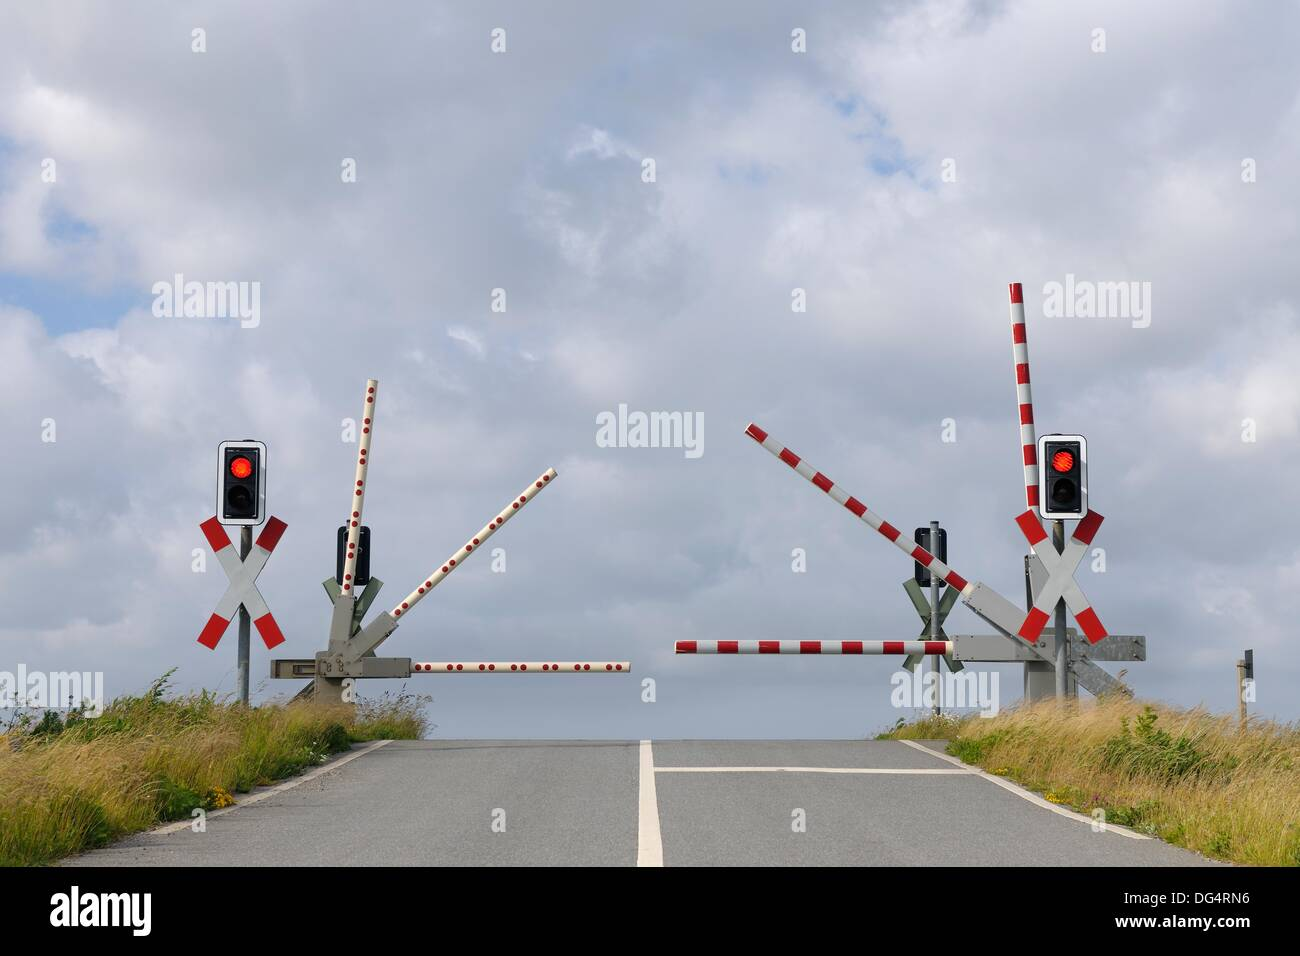 Railroad crossing with gates in motion and traffic lights